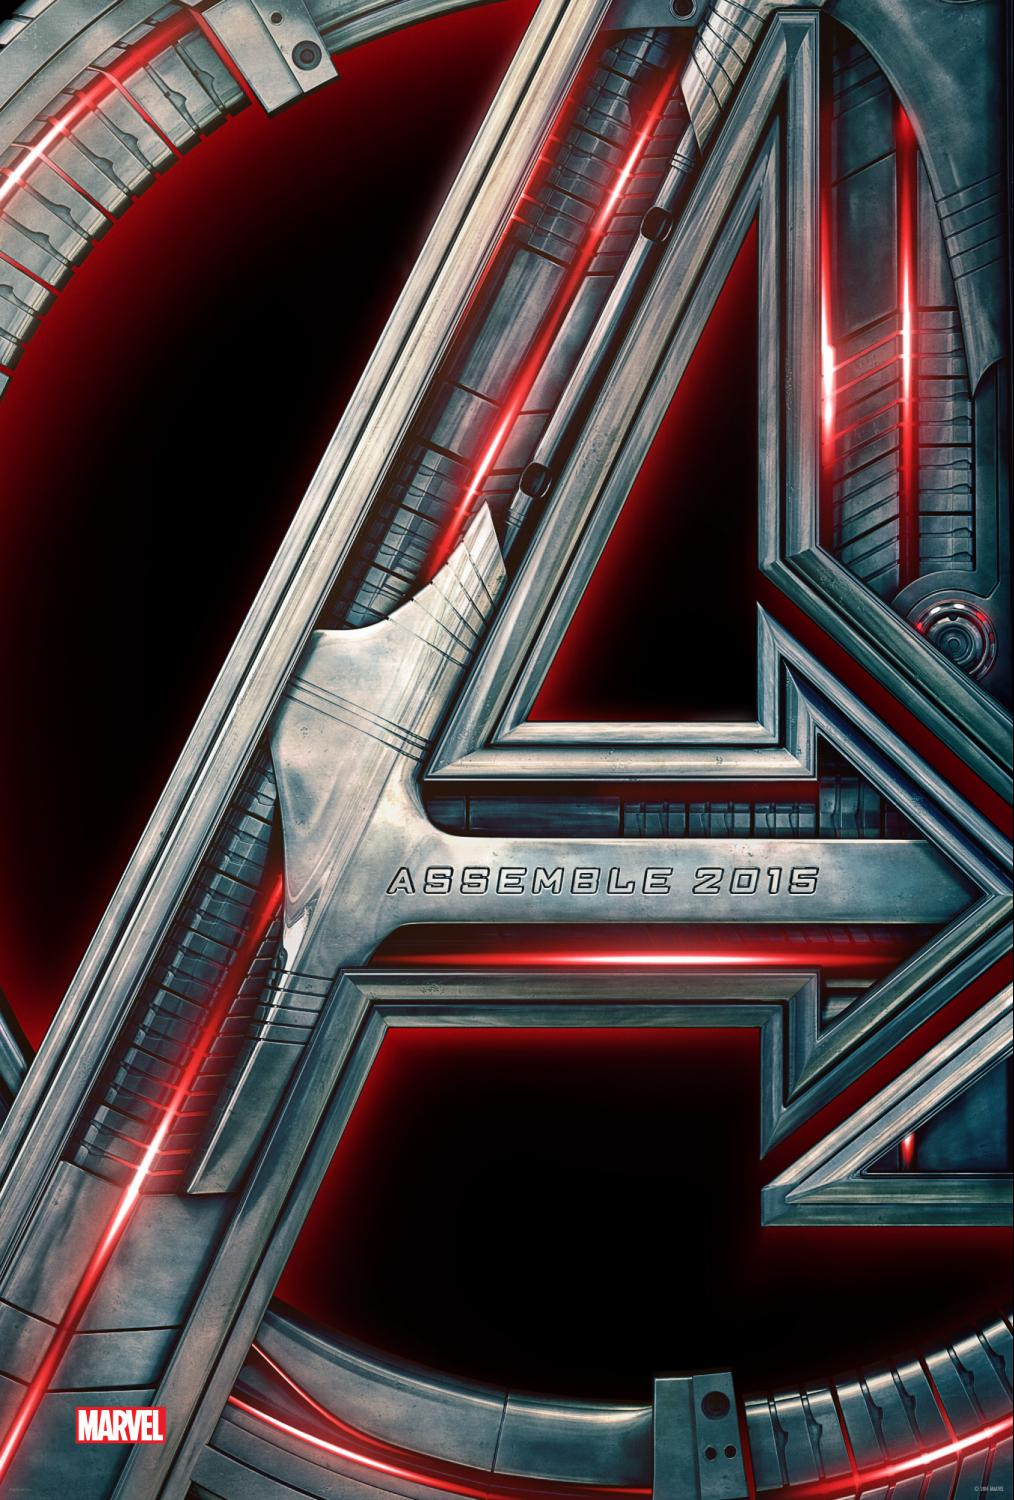 Avengers Age of Ultron NEW Trailer